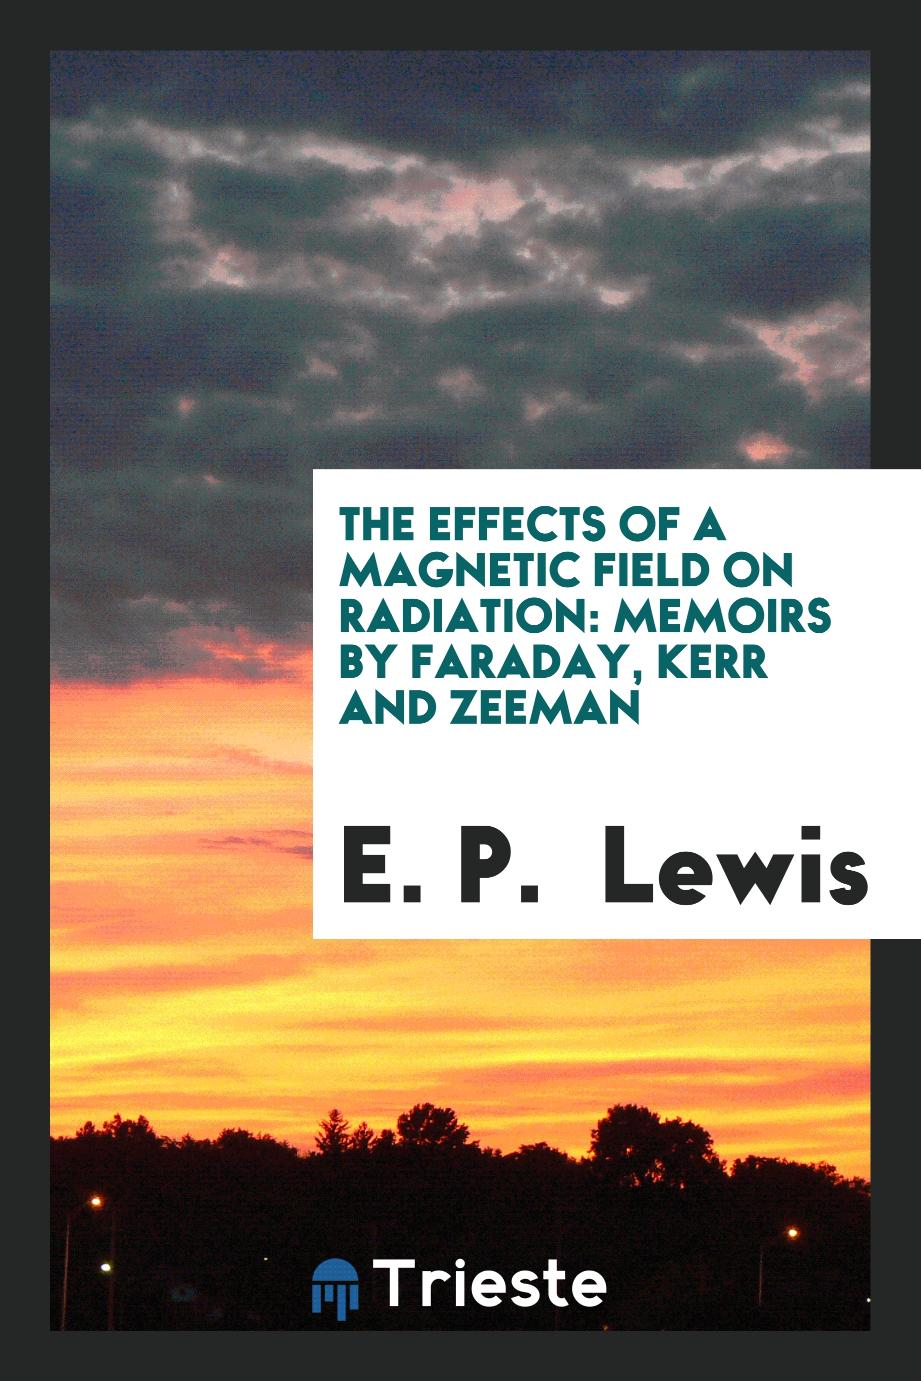 The Effects of a Magnetic Field on Radiation: Memoirs by Faraday, Kerr and Zeeman